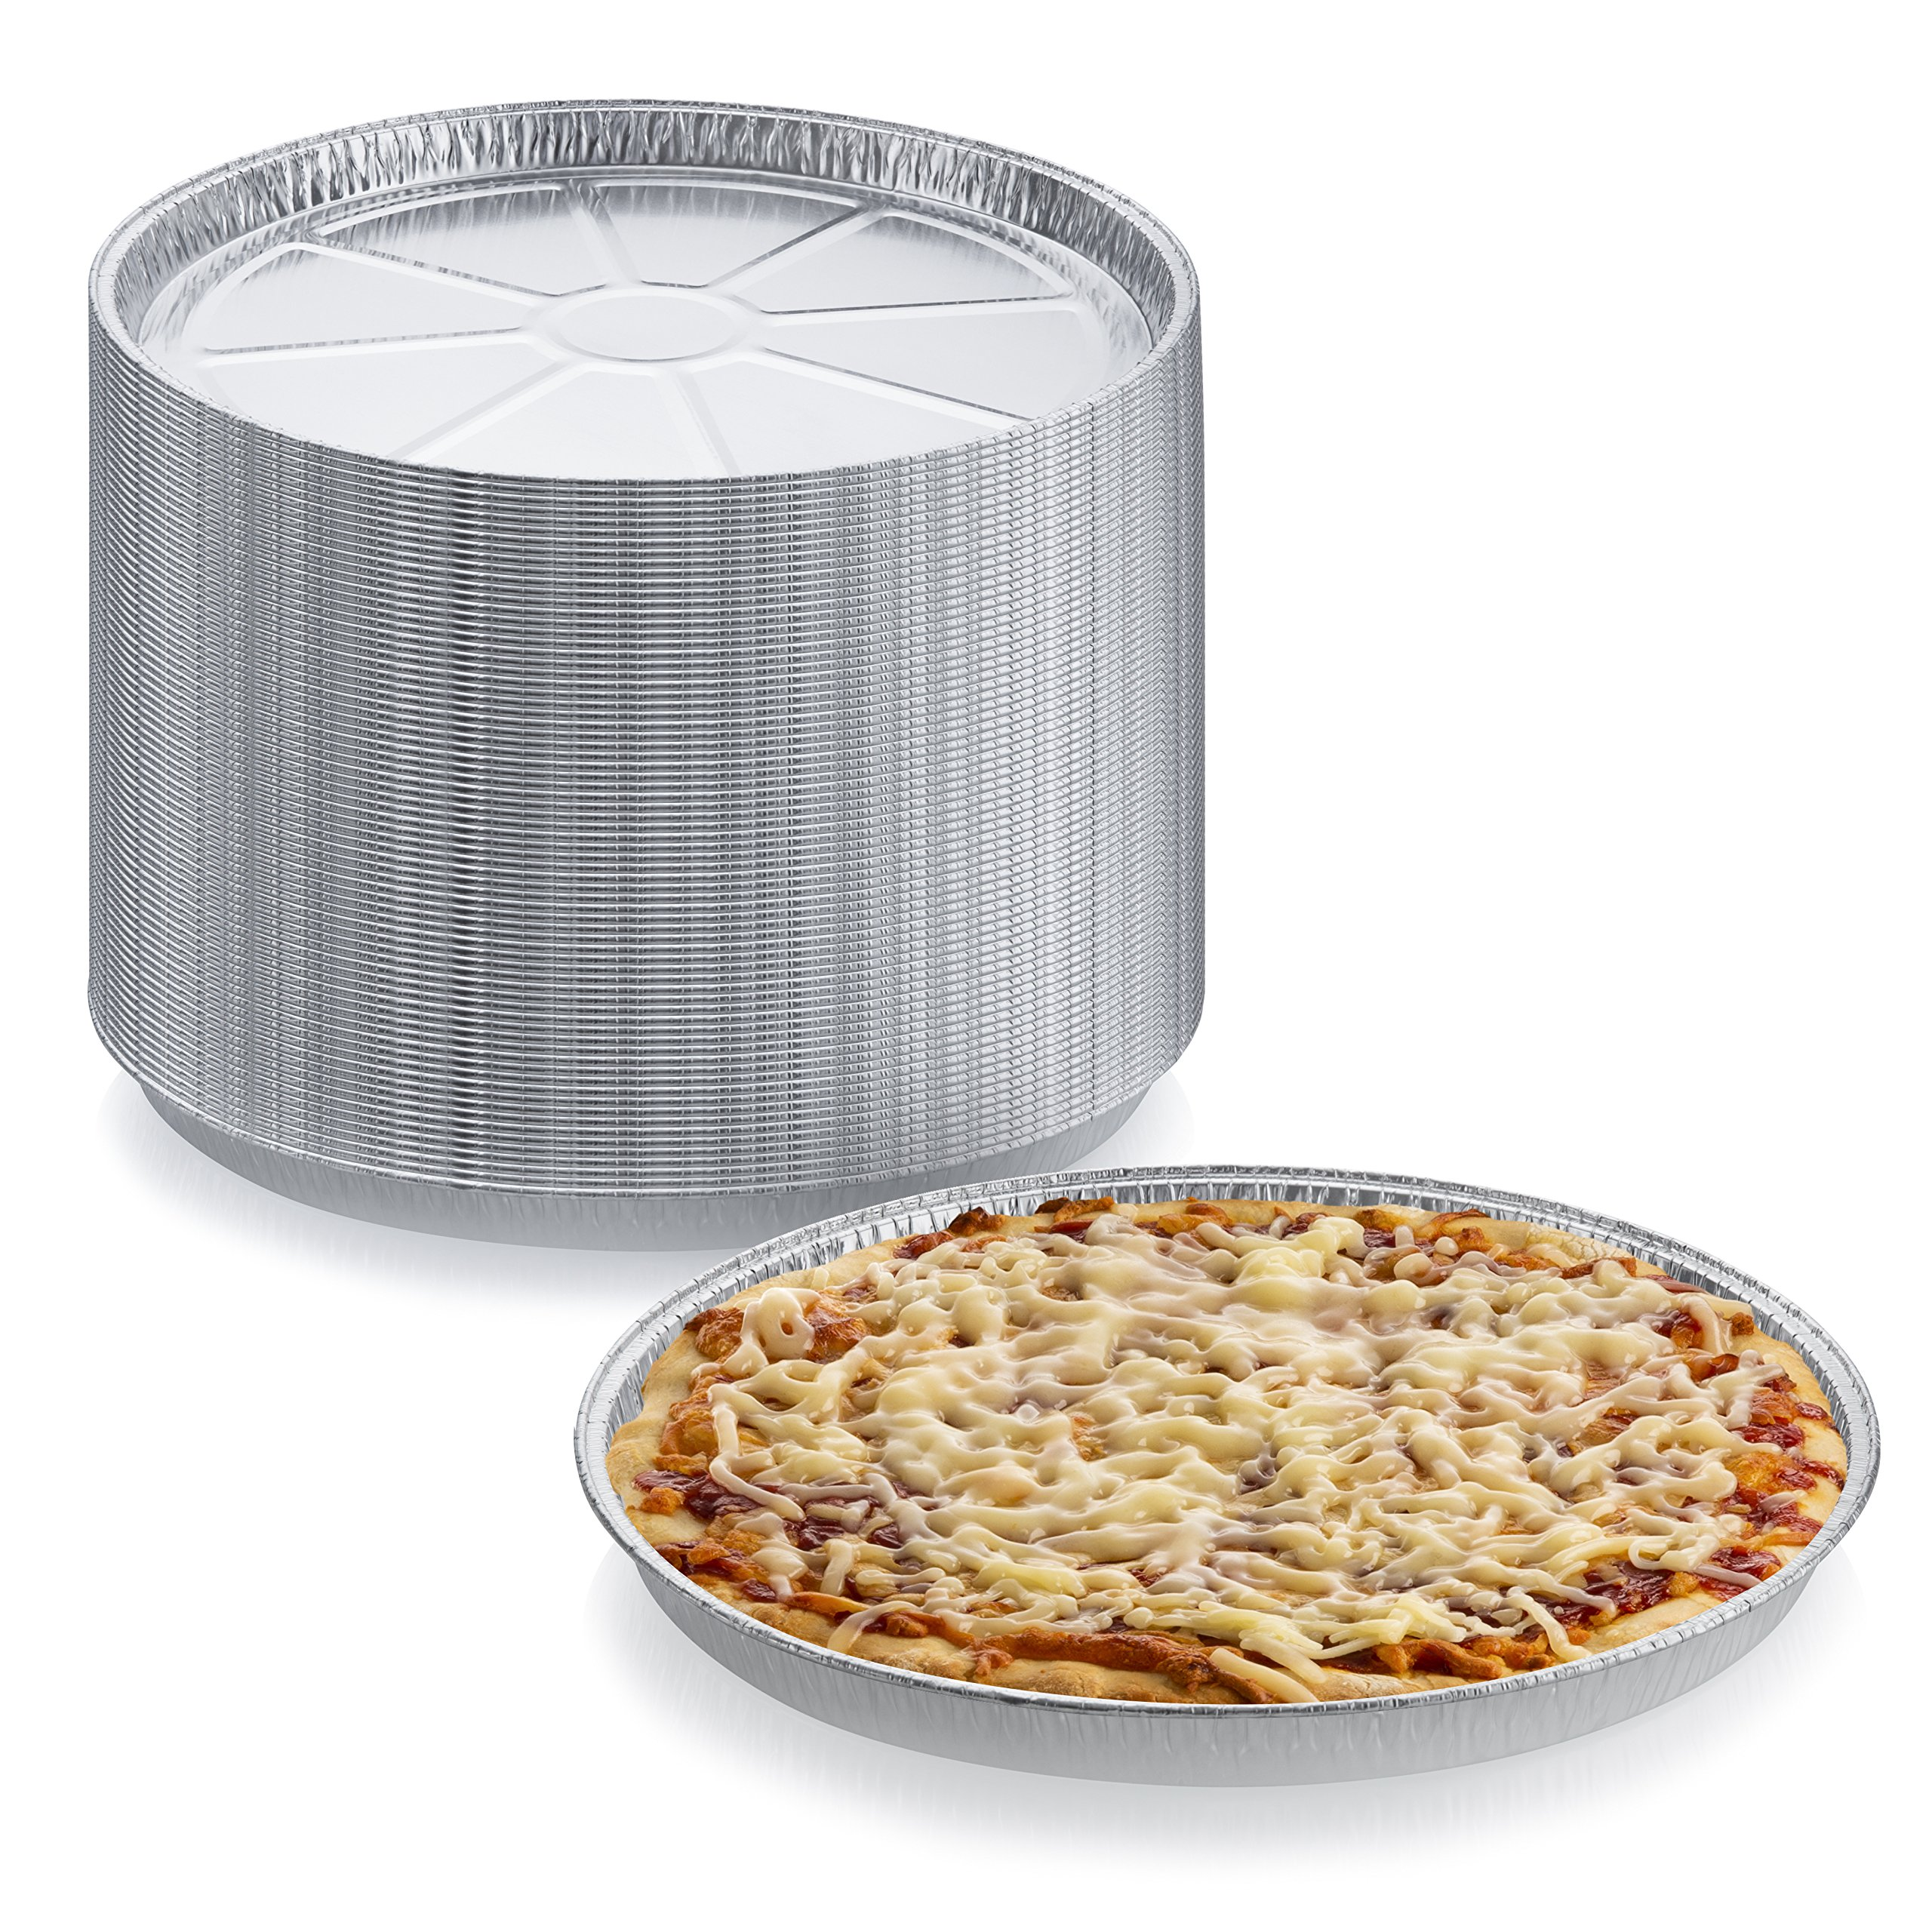 Pack of 24 Disposable Round Foil Pizza Pans – Durable Pizza Tray for Cookies, Cake, Focaccia and More – Size: 12-1/4'' x 3/8''